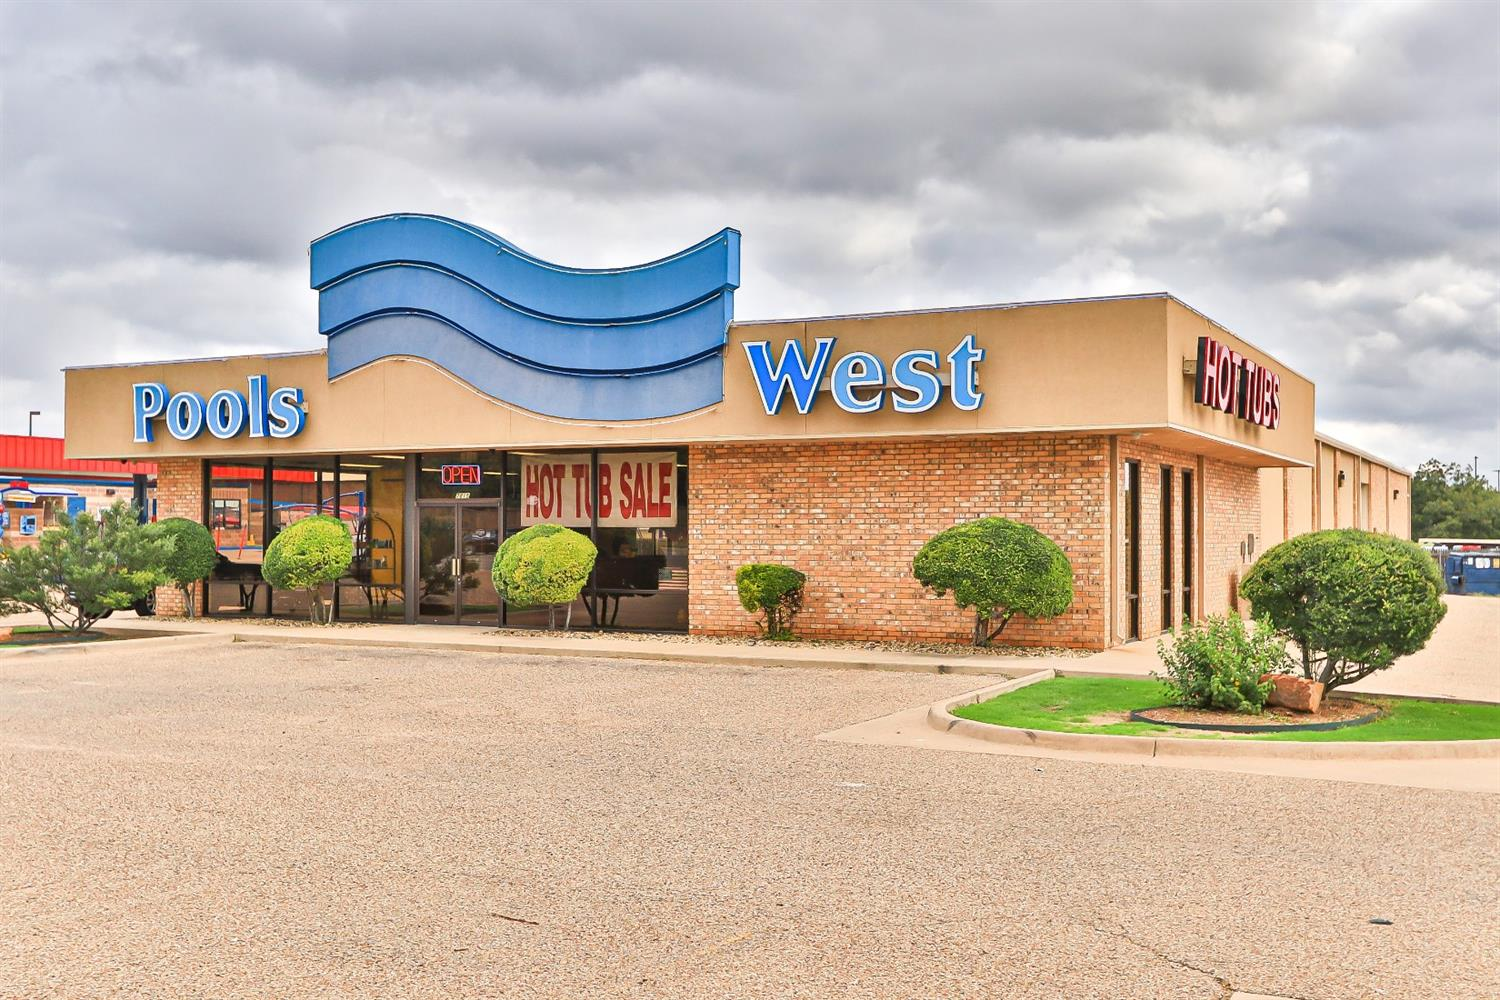 Prime retail location in free standing building. High traffic counts. Building is mostly open and could be transformed for many uses. Pools West is re-locating not going out of business.   Versatile Flex Building For Sale or Lease  High Traffic Counts of 32,000 VPD  Easy Access to S Loop 289  Delivery Dock with Overhead Door Along with 2 Grade Level Doors  Prime Location with Excellent Visibility